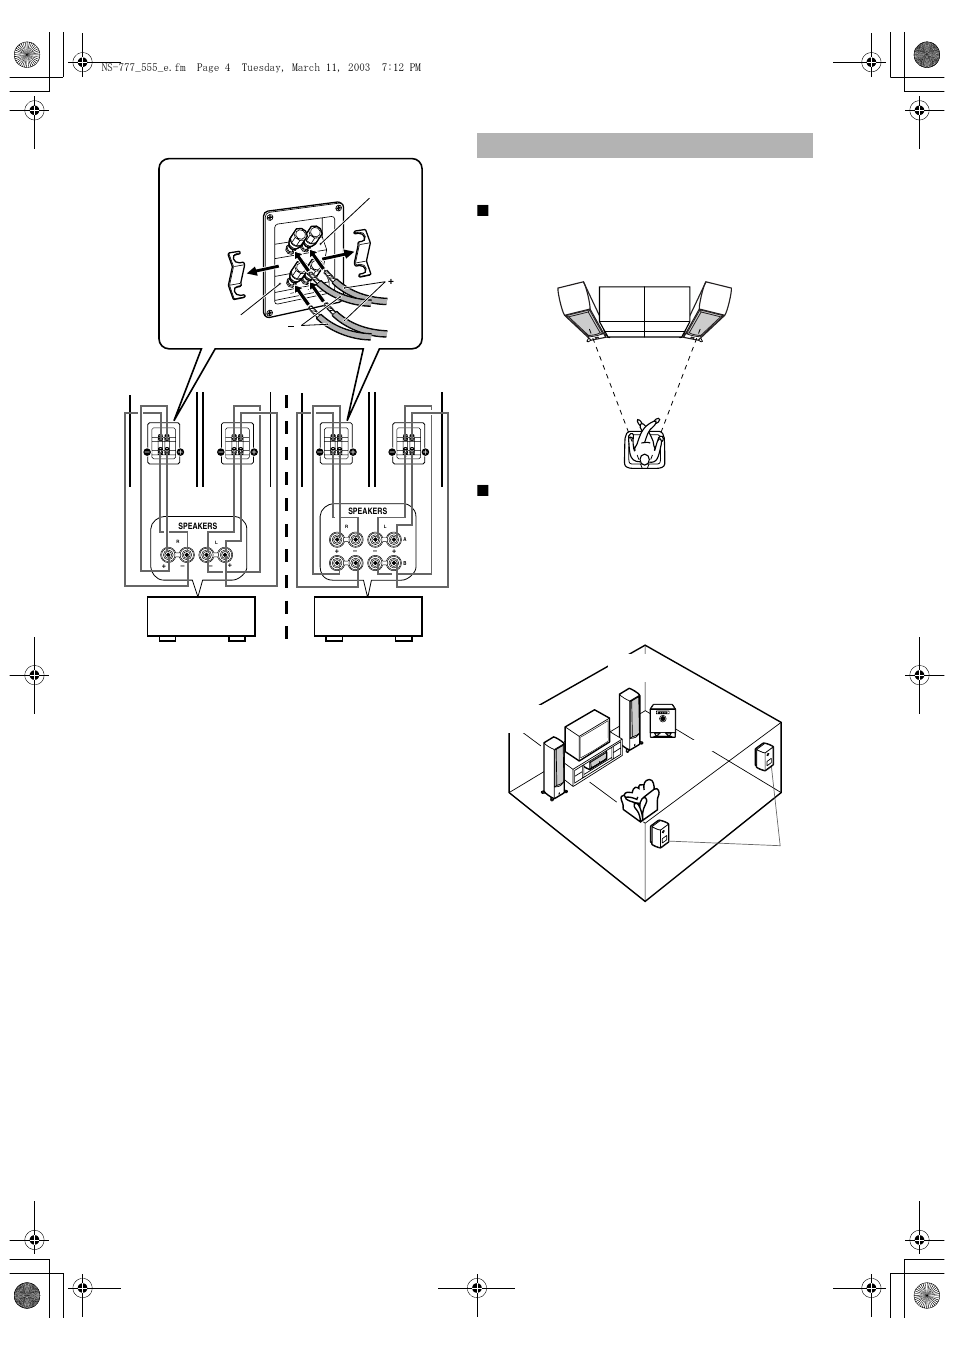 Placing The Speakers Bi Wired Connection Using As 2ch Stereo Diagram Further Wire Speaker Cable On Wiring Yamaha Ns 555 User Manual Page 4 6